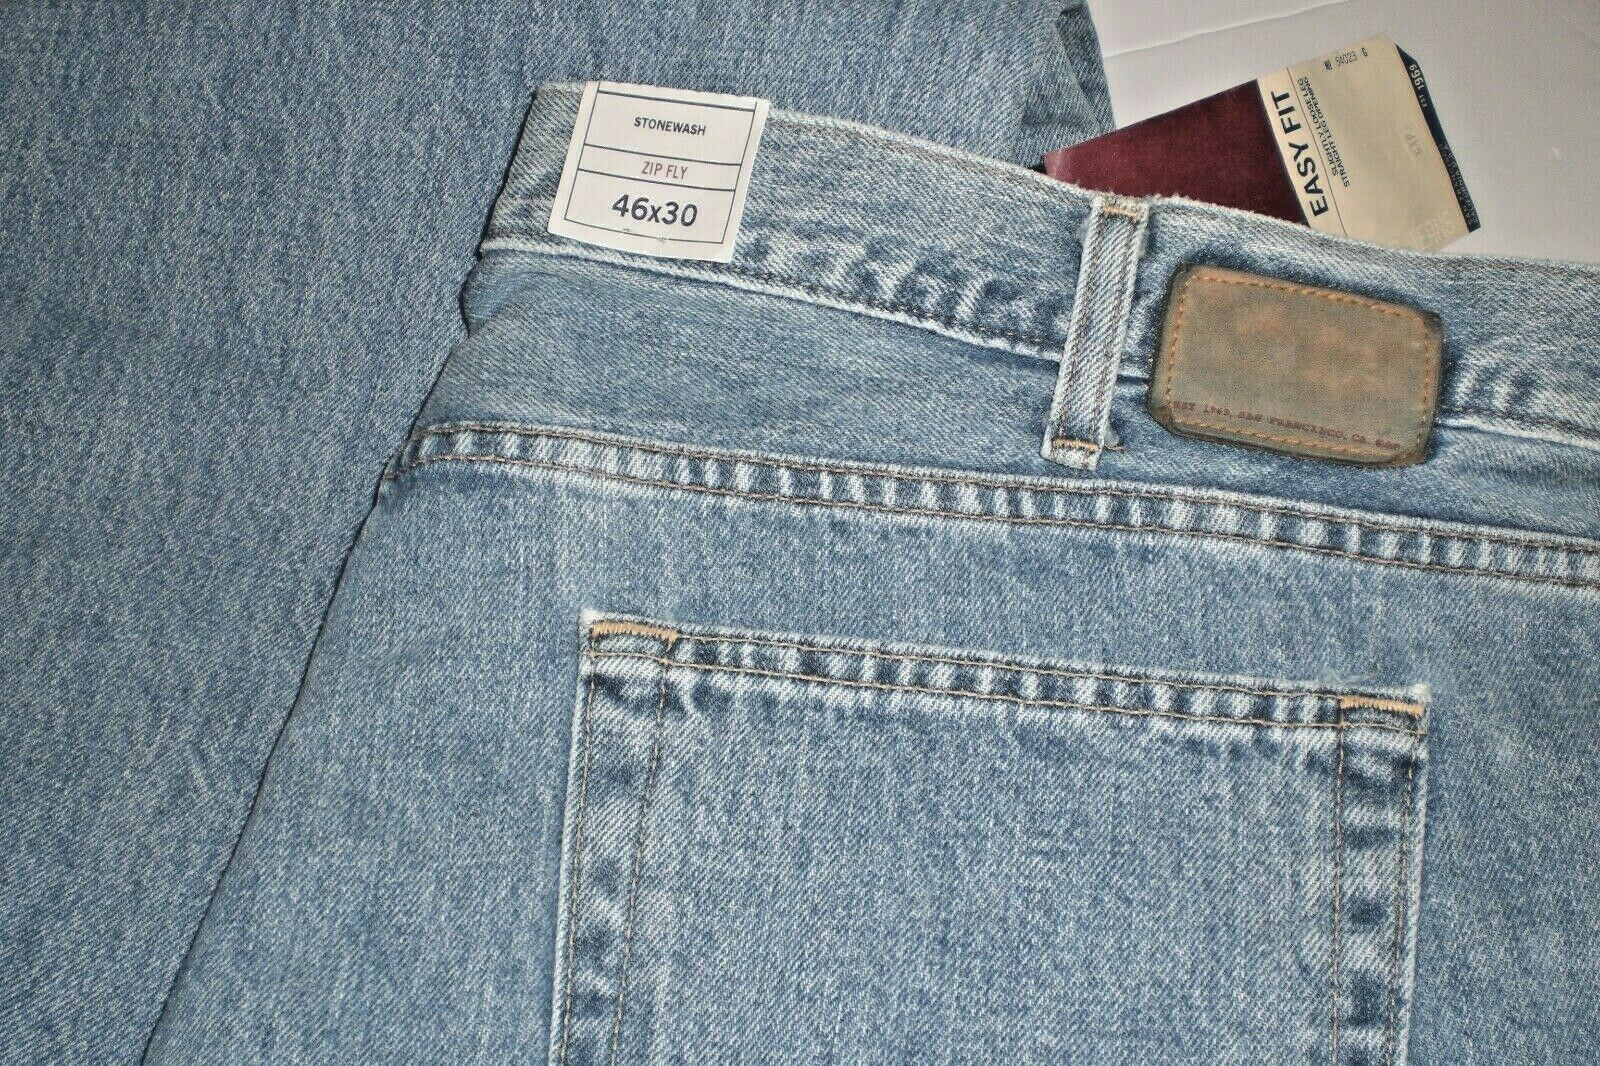 Gap 1969 Men's Jeans Easy Fit Light Wash Size 46 x 30 NWT 2 PAIR